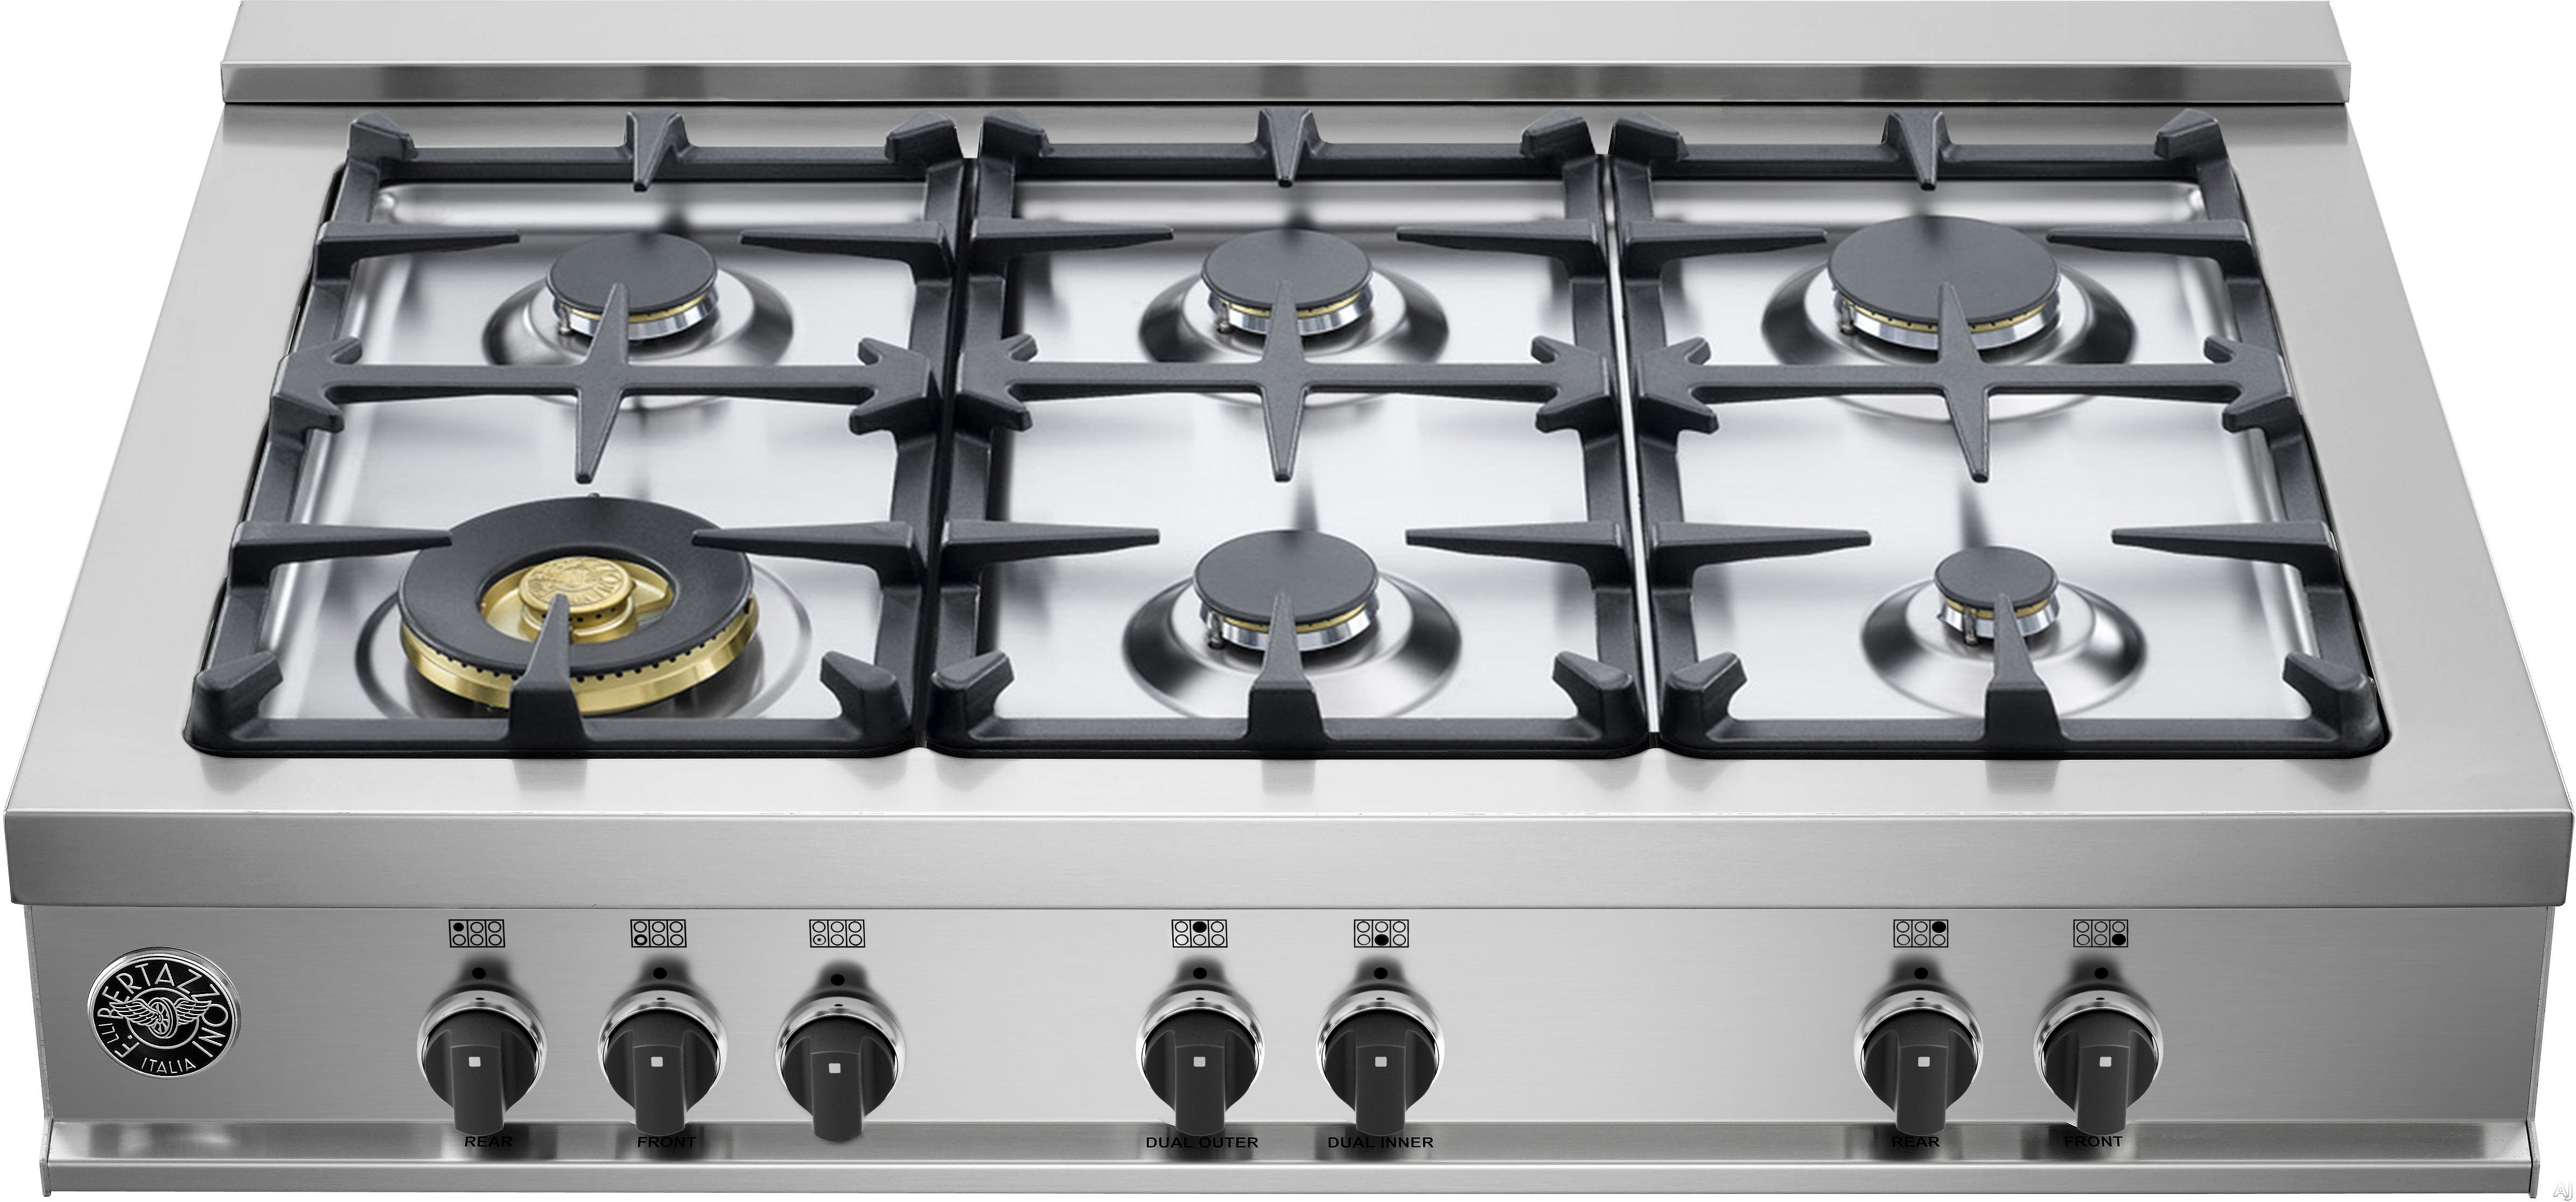 Bertazzoni Master Series CB36M600 36 Inch Gas Rangetop with 6 Sealed Burners, 18,000 BTU Dual-Ring Power Burner, Continuous Cast Iron Grates and Electronic Ignition